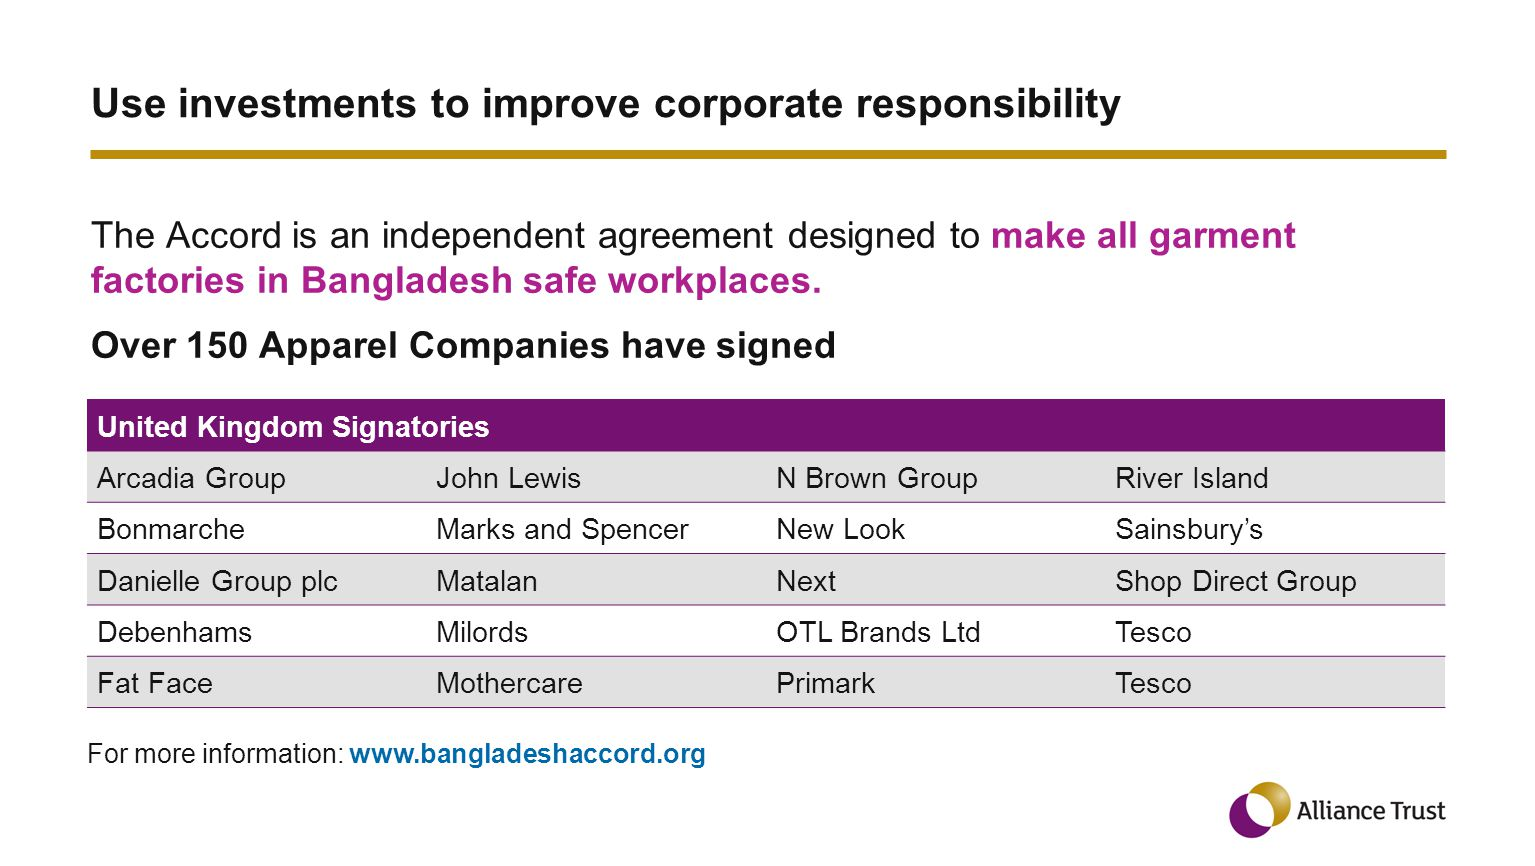 Use investments to improve corporate responsibility The Accord is an independent agreement designed to make all garment factories in Bangladesh safe workplaces.